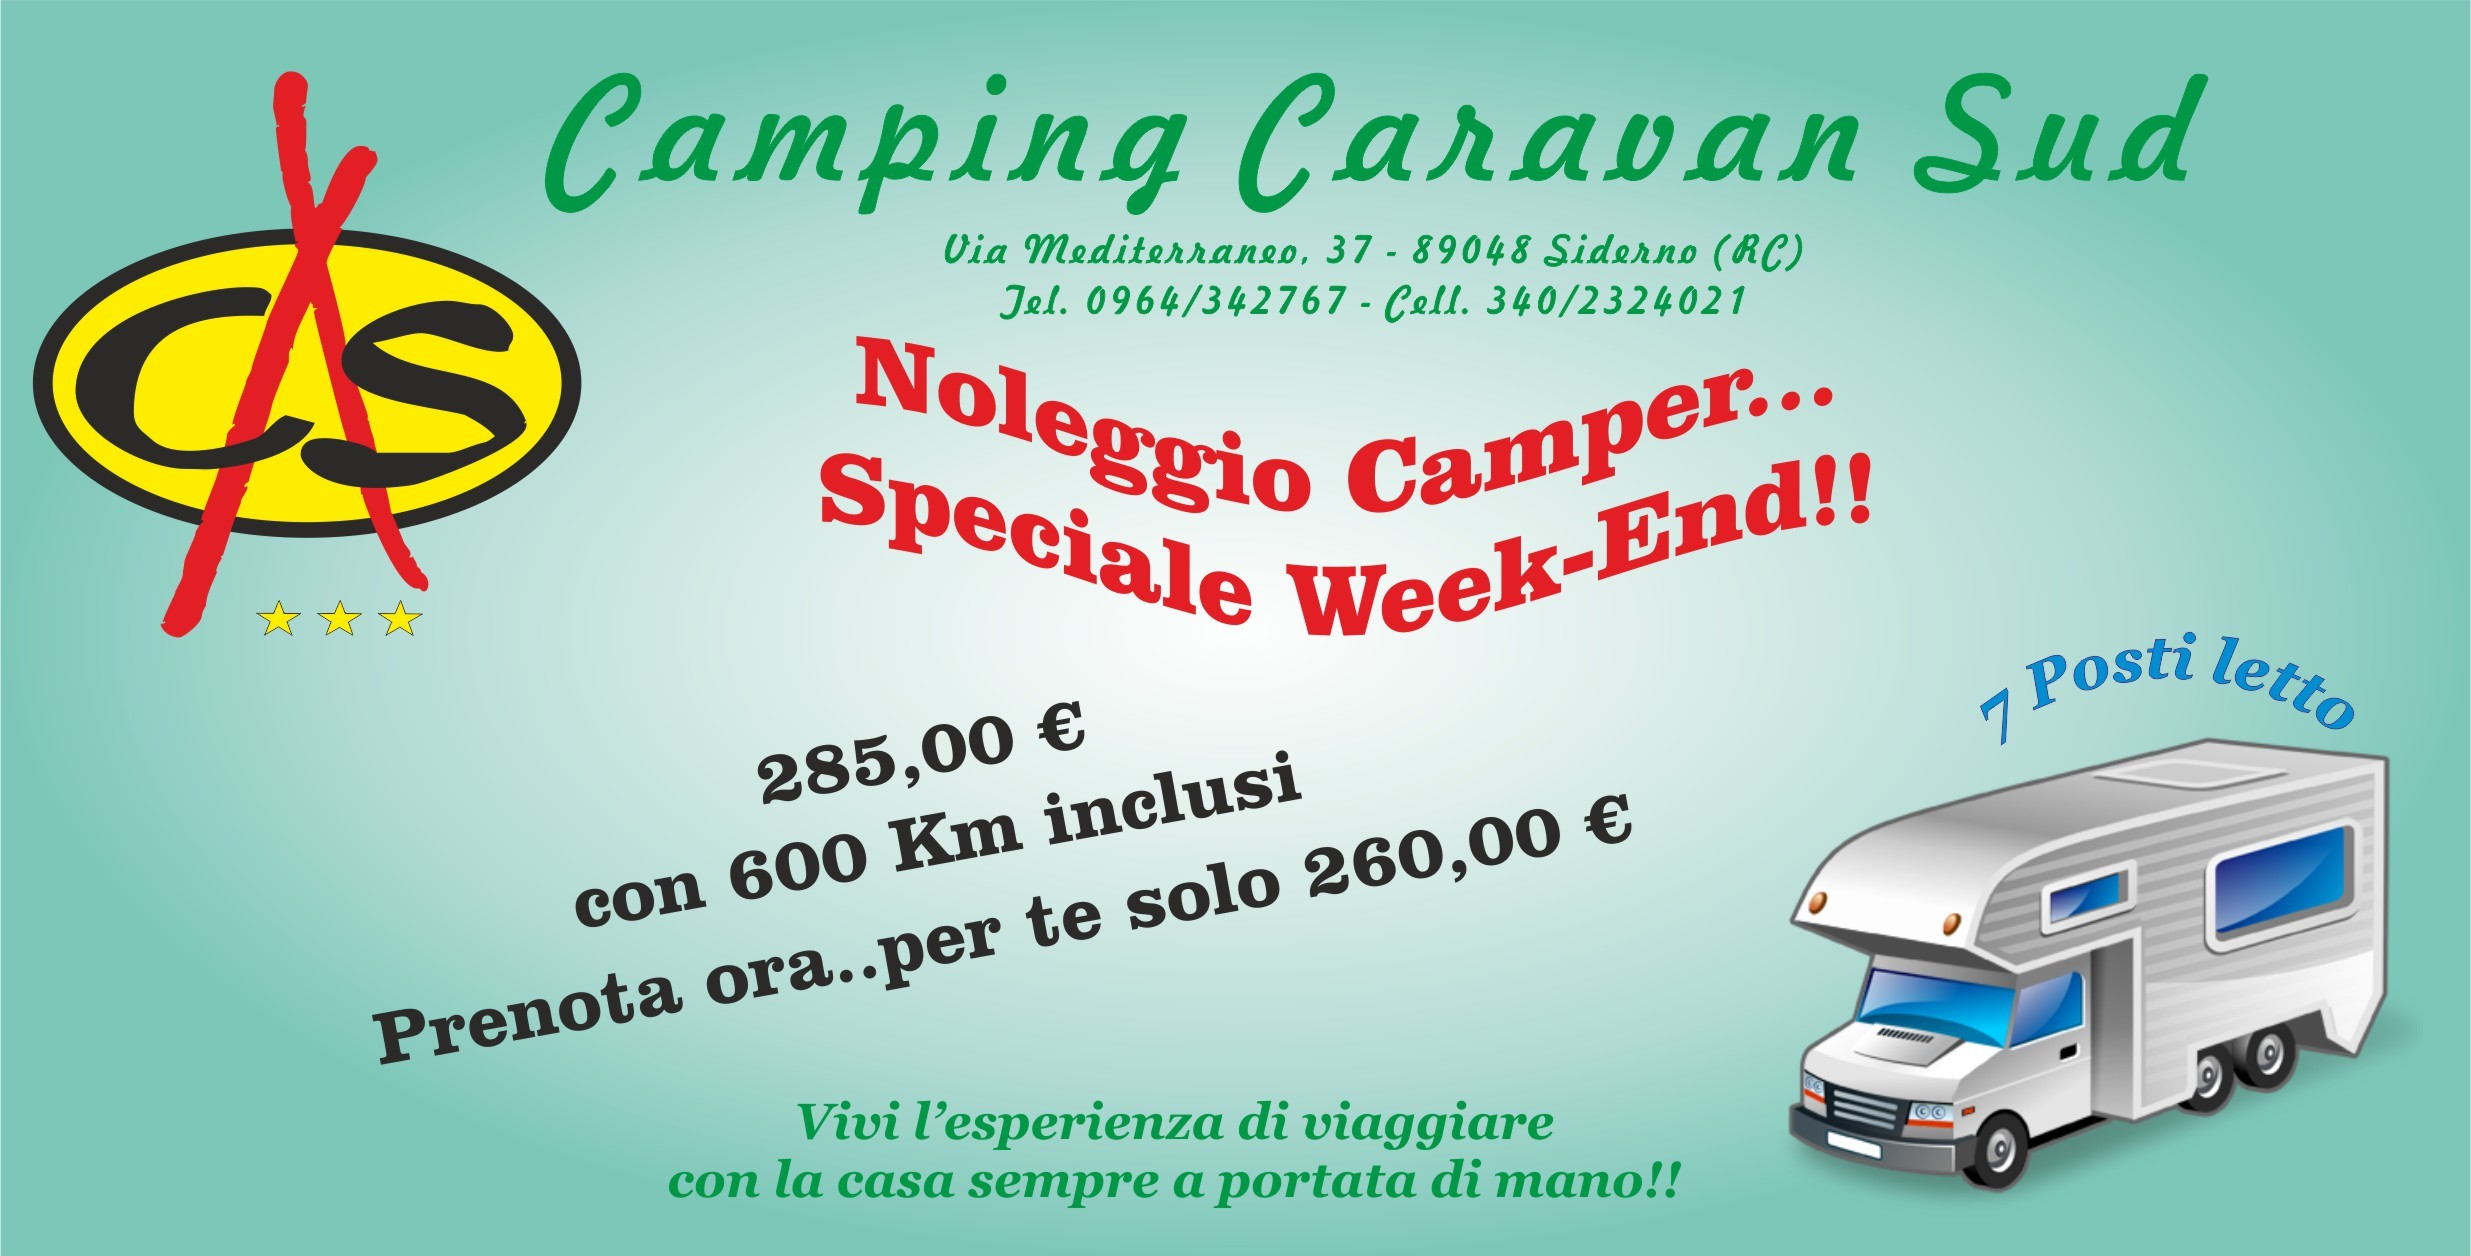 SPECIALE WEEKEND CAMPER